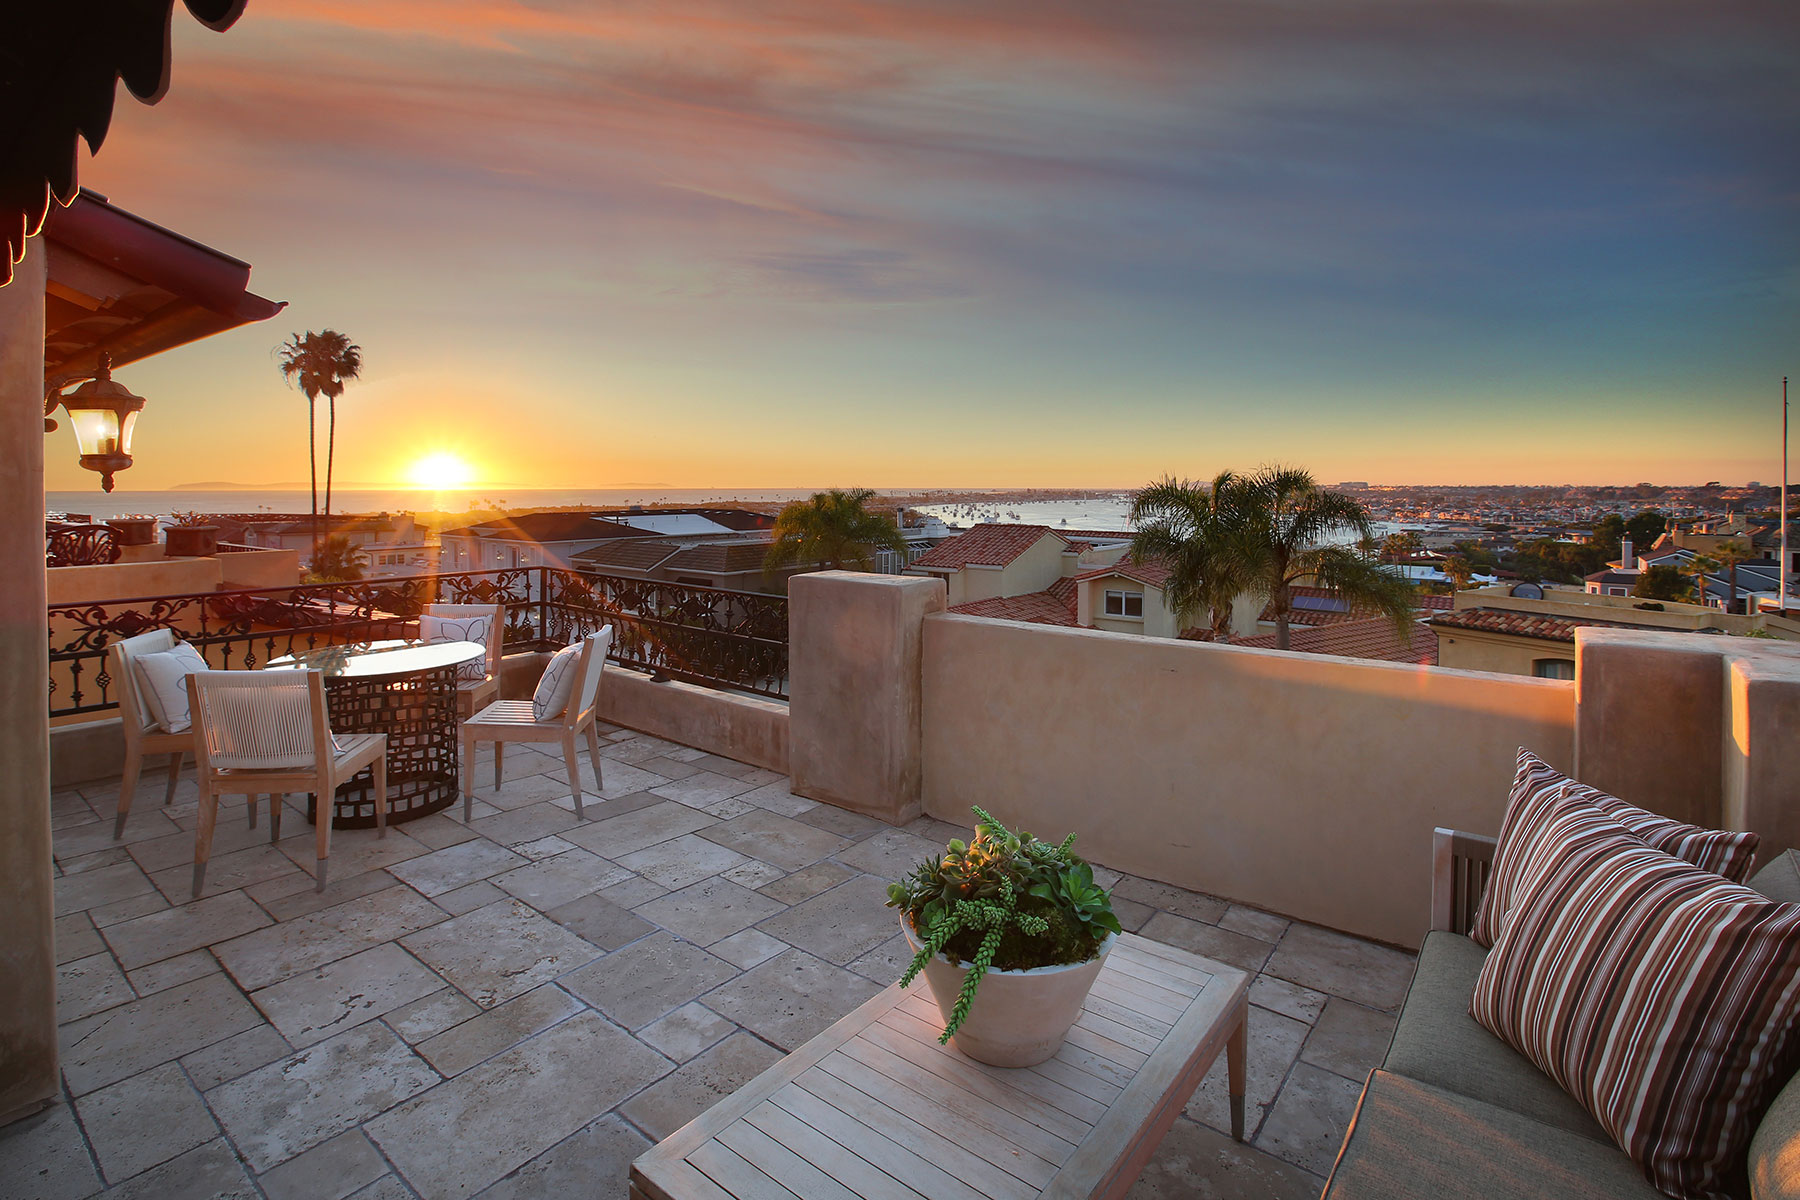 Single Family Home for Sale at 312 Carnation Corona Del Mar, California, 92625 United States